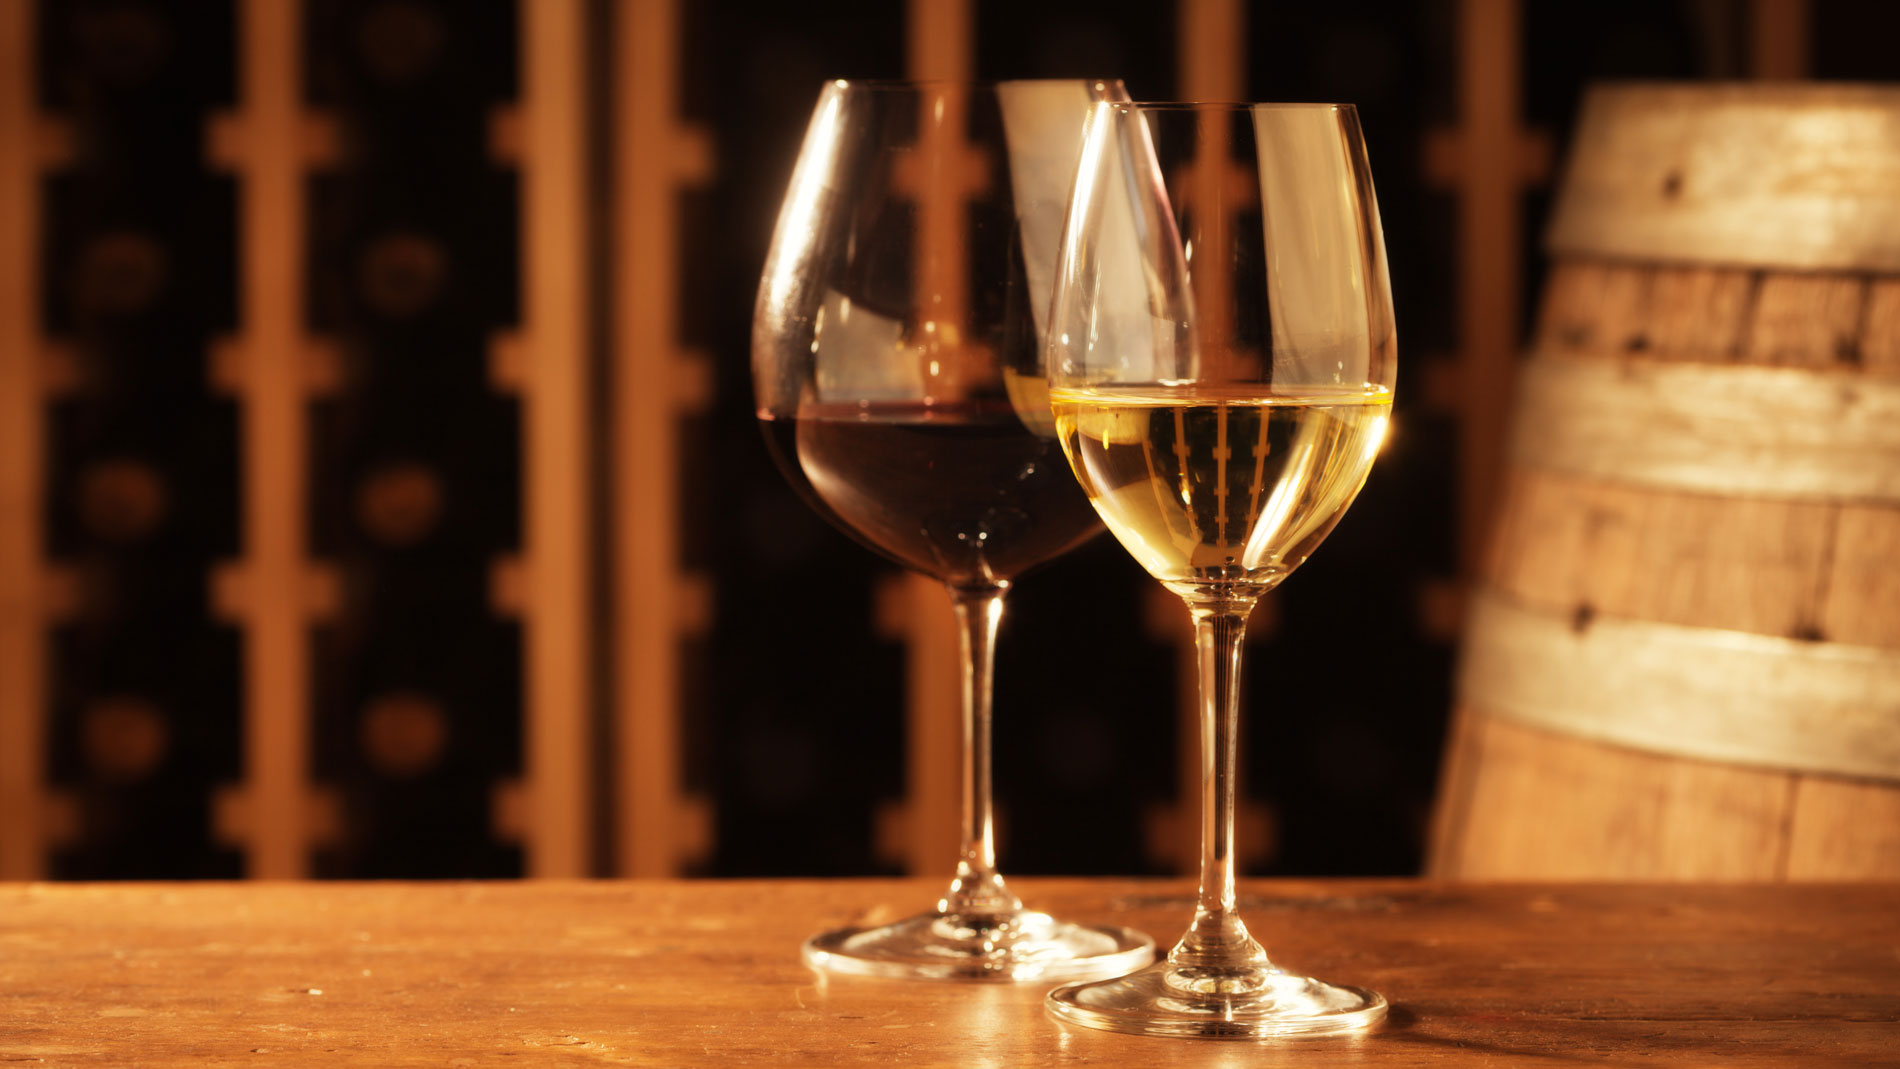 buy red and white wine online